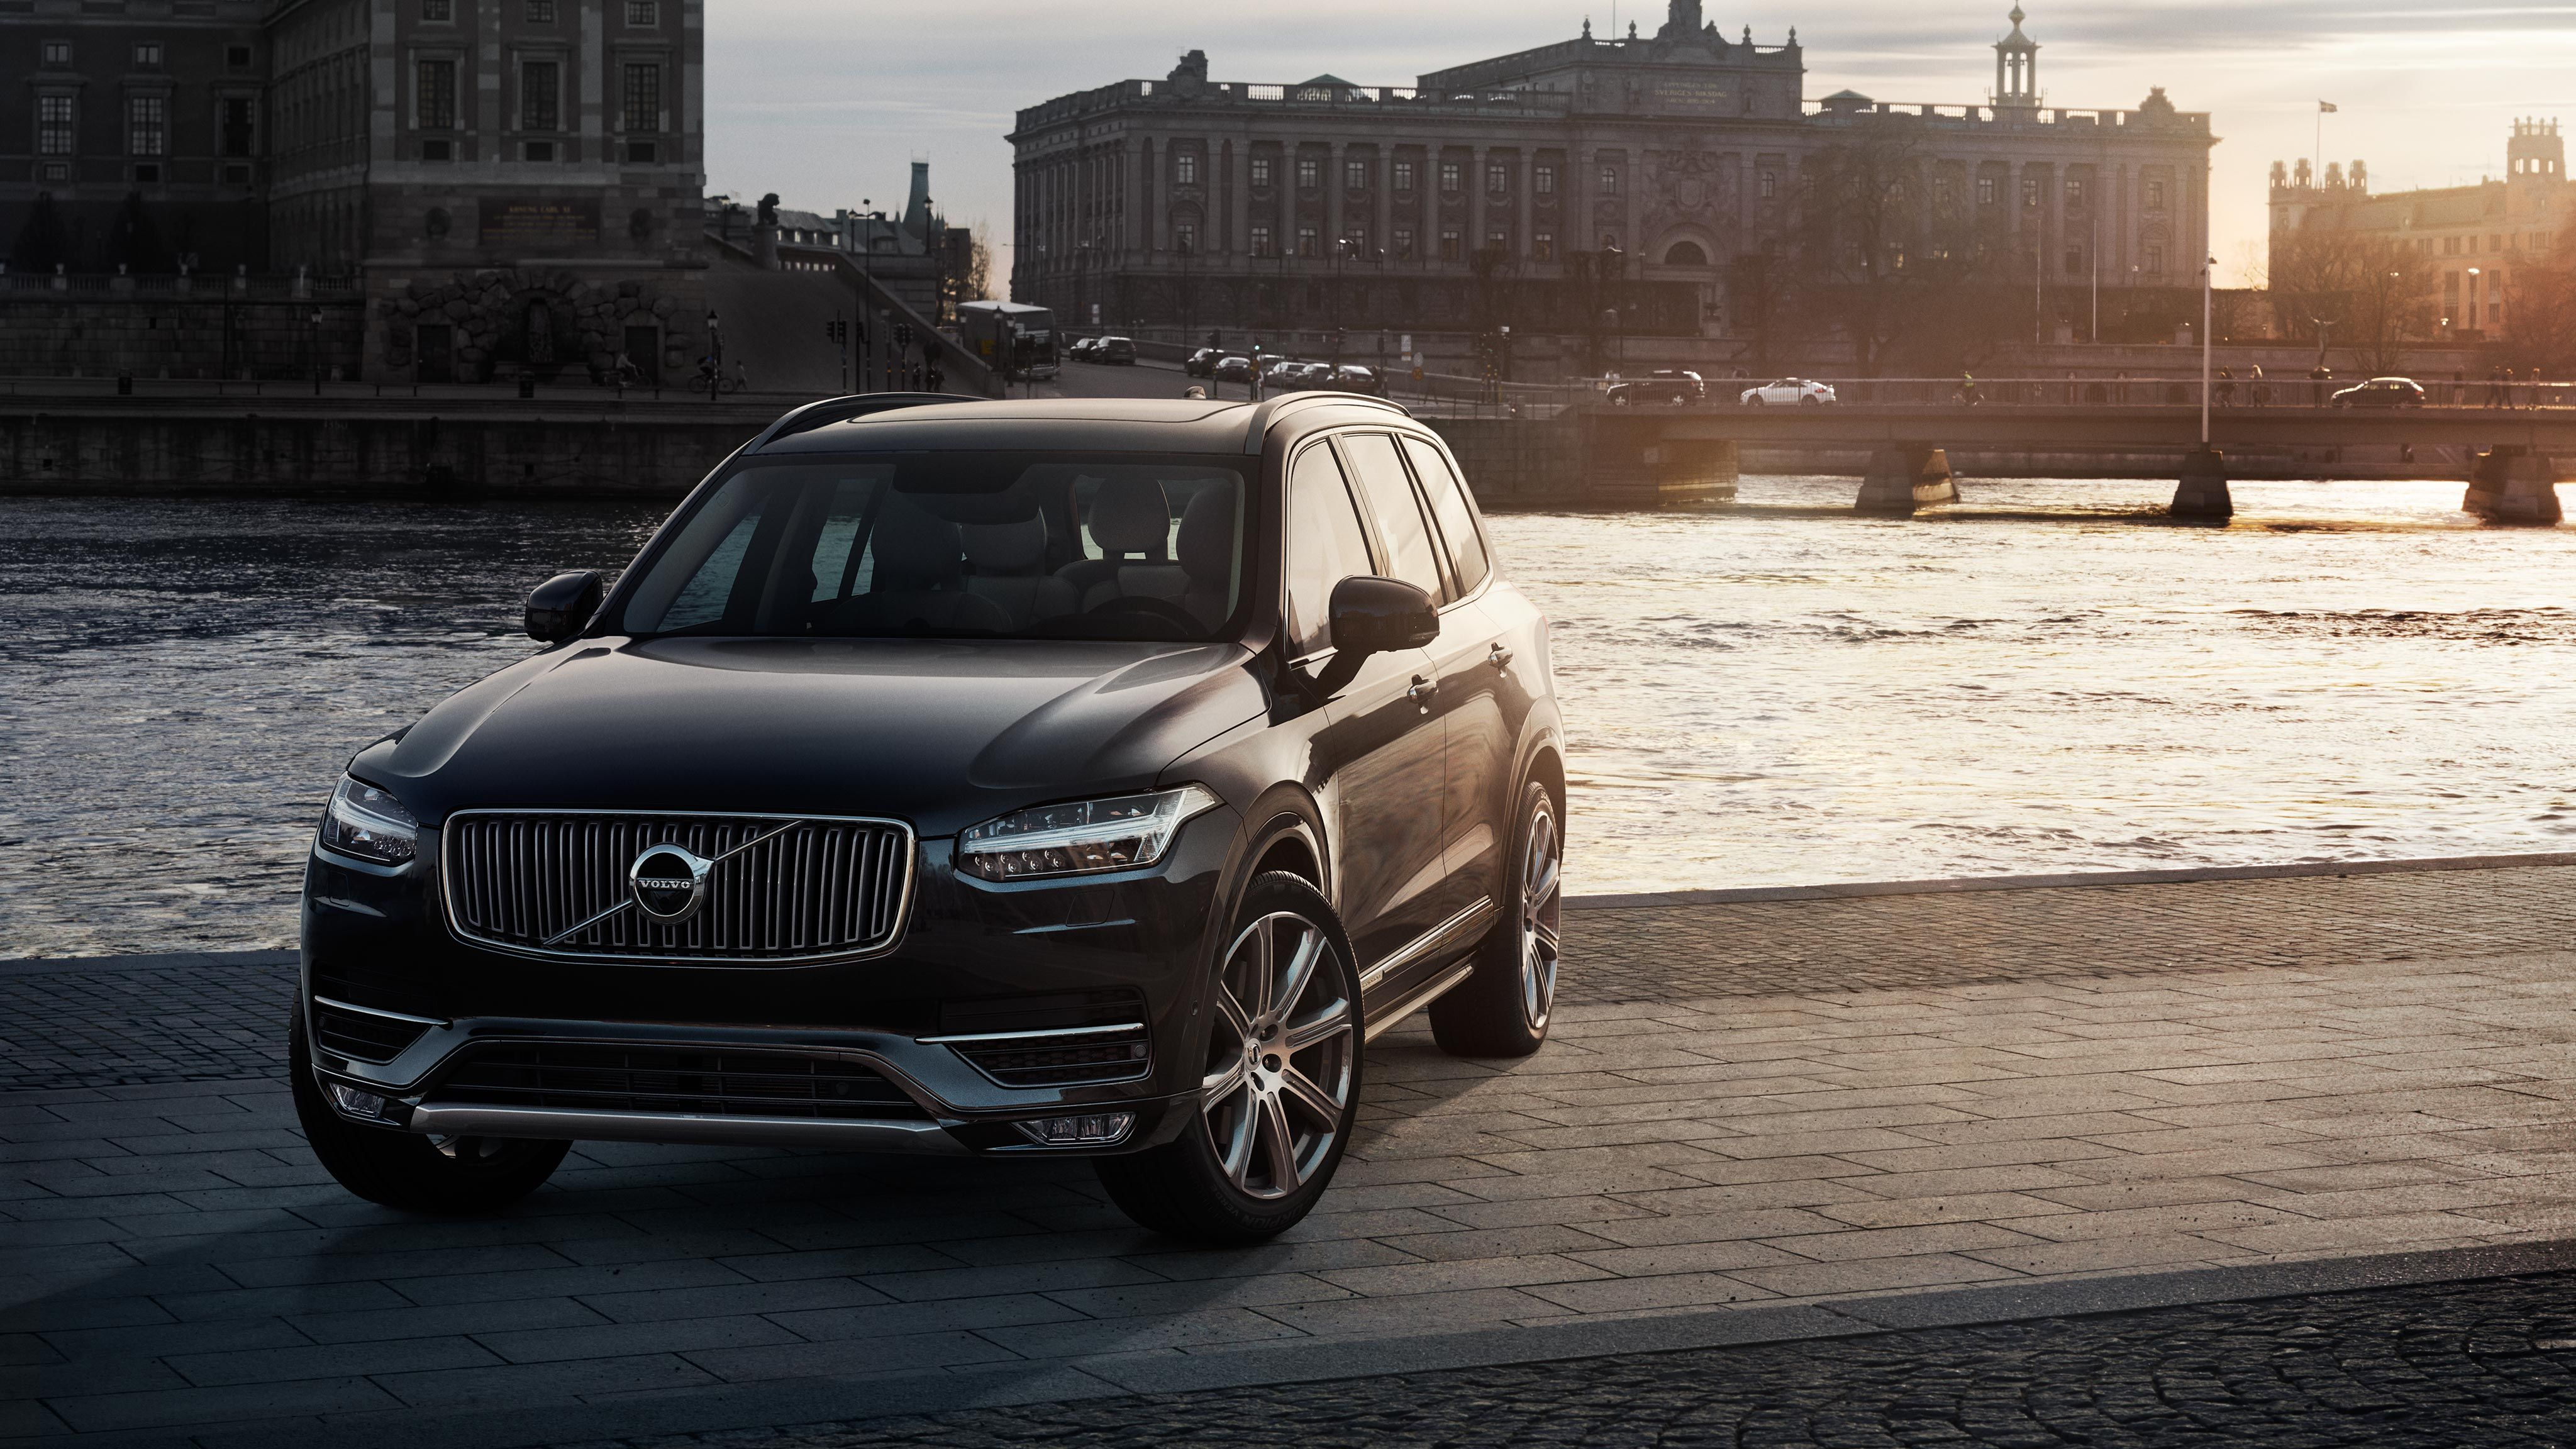 2016 volvo xc90 review specs and price luxury car like 2016 volvo xc90 will